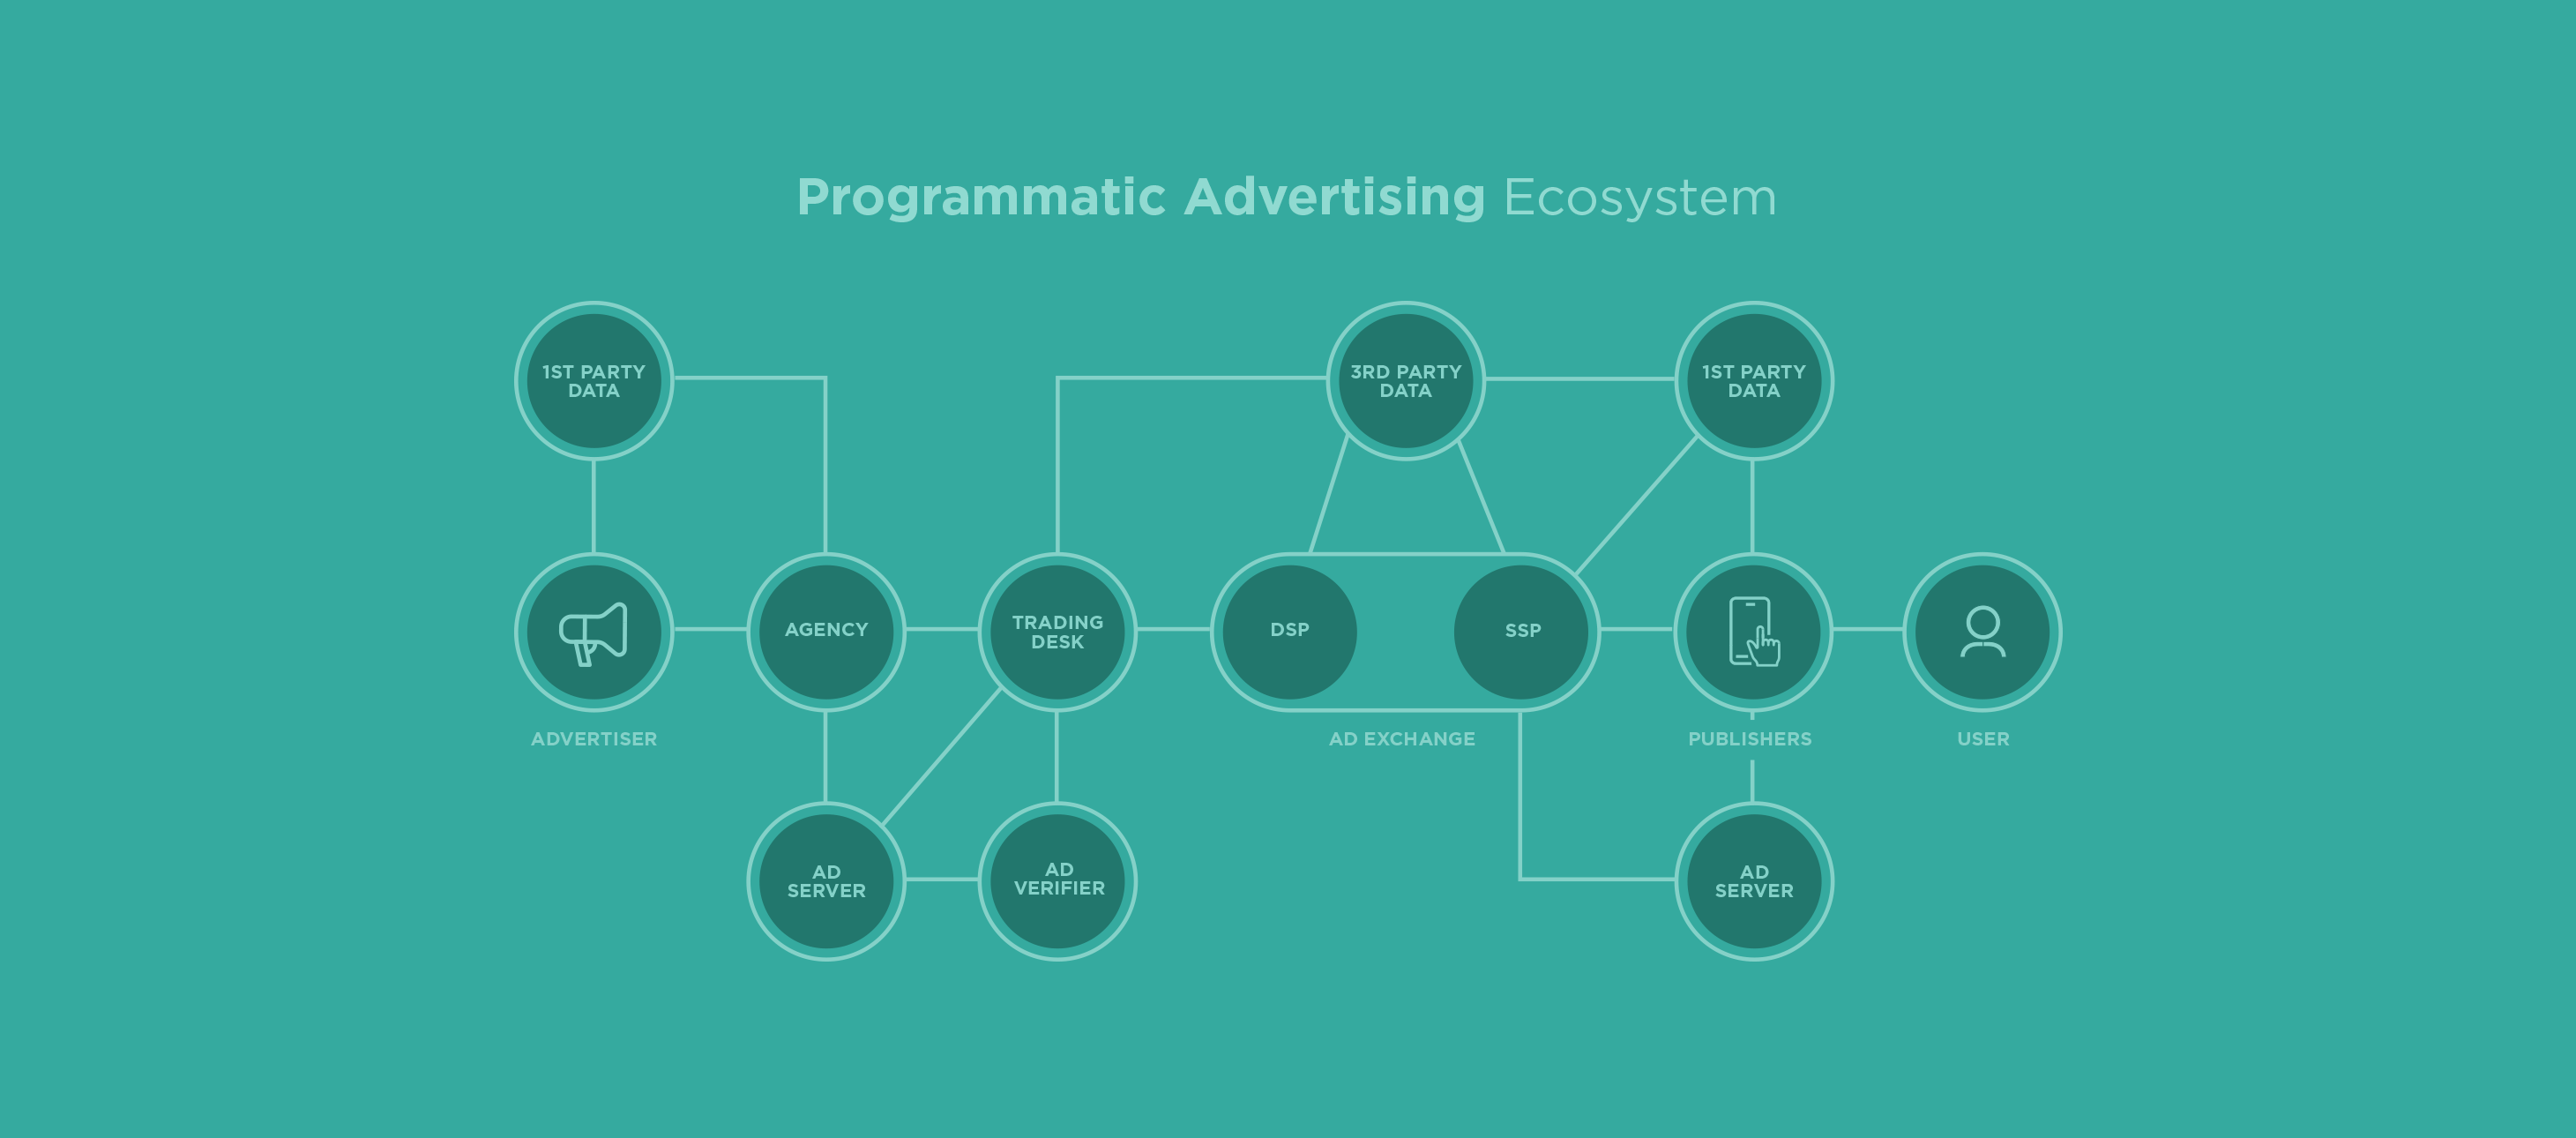 Programmatic advertising ecosystem